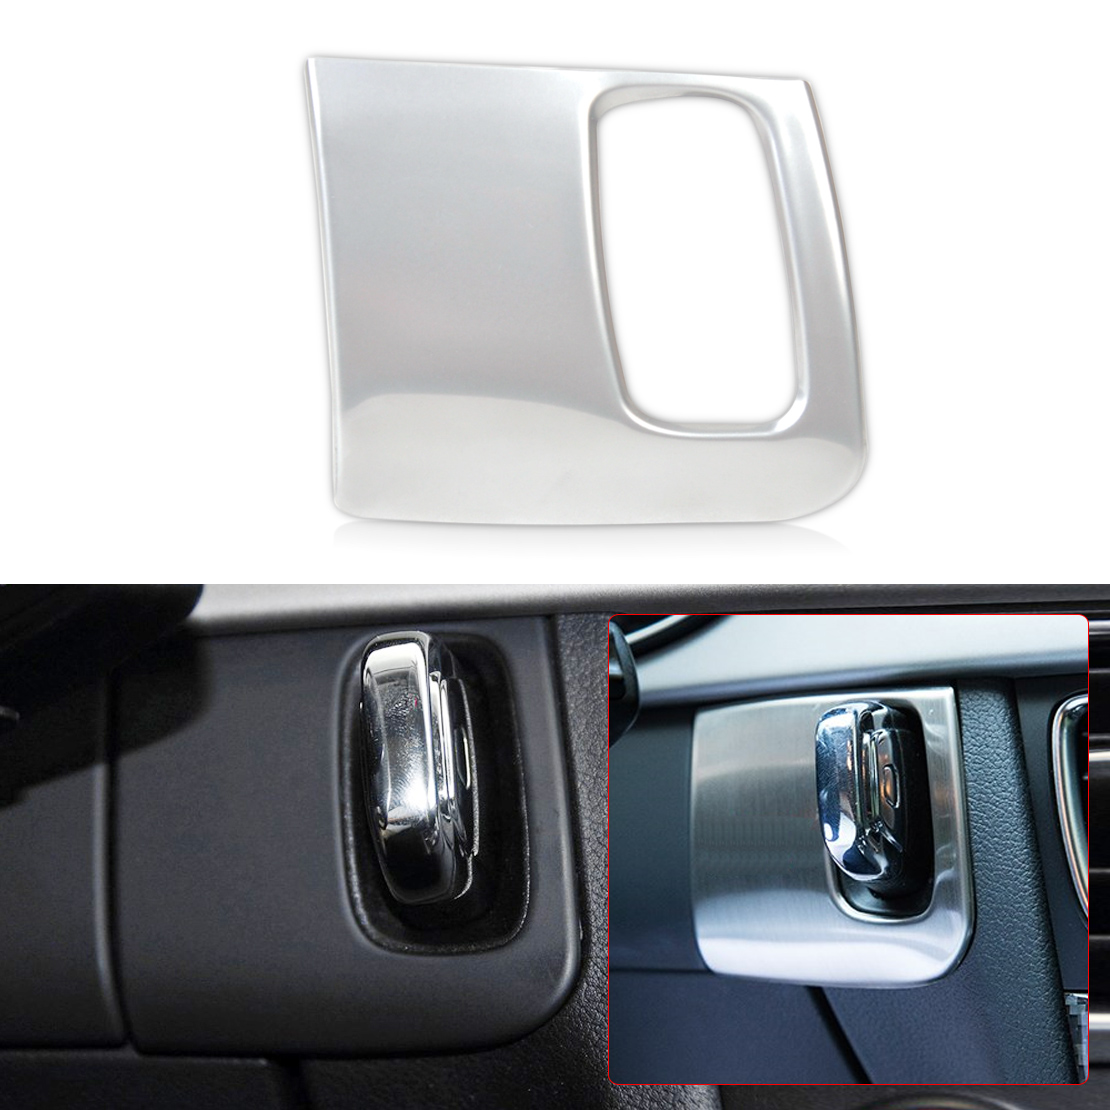 beler Silver Stainless Steel Dash Ignition keyhole Molding Cover Trim for <font><b>Audi</b></font> <font><b>A4</b></font> A5 2009 2010 2011 2012 <font><b>2013</b></font> 2014 2015 image